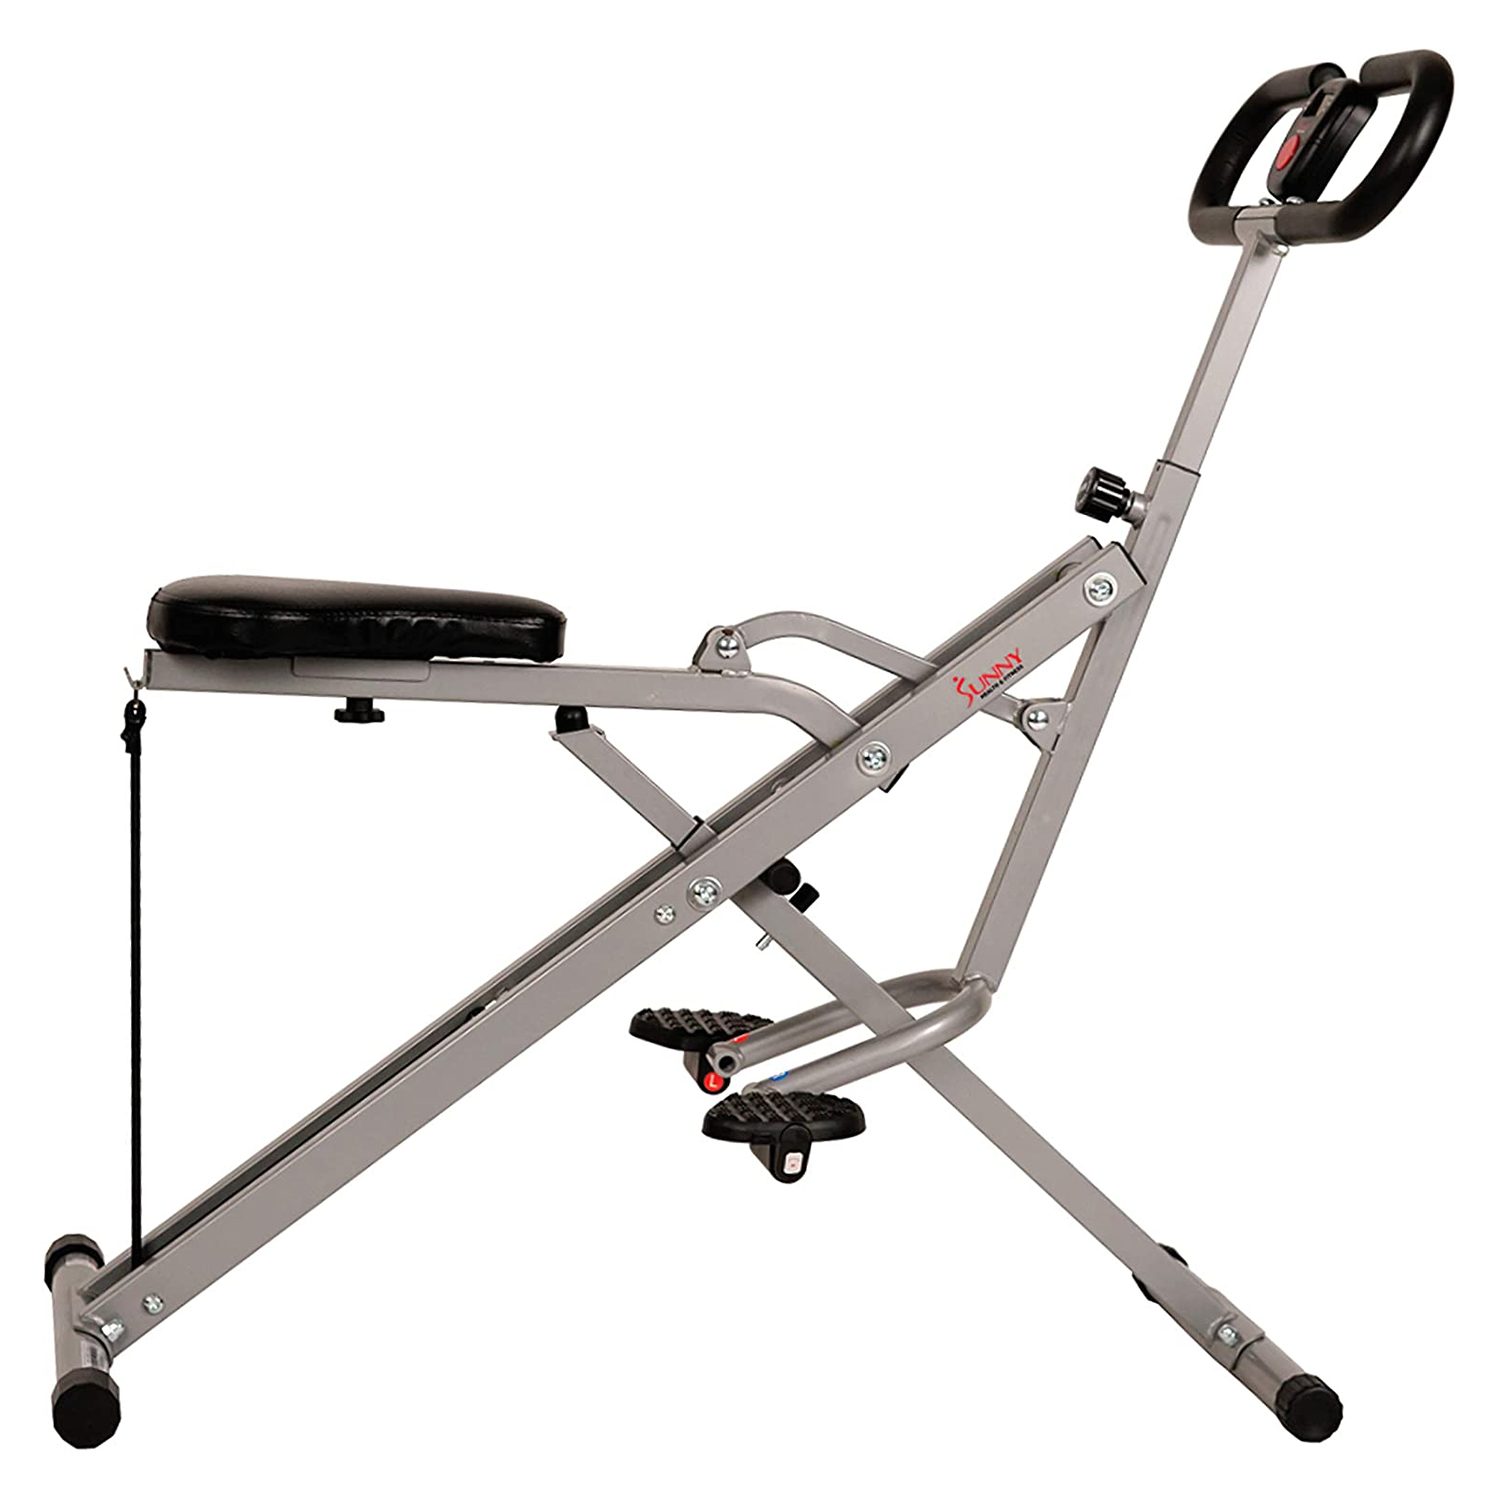 Sunny Health & Fitness Squat Assist Row-N-Ride Trainer